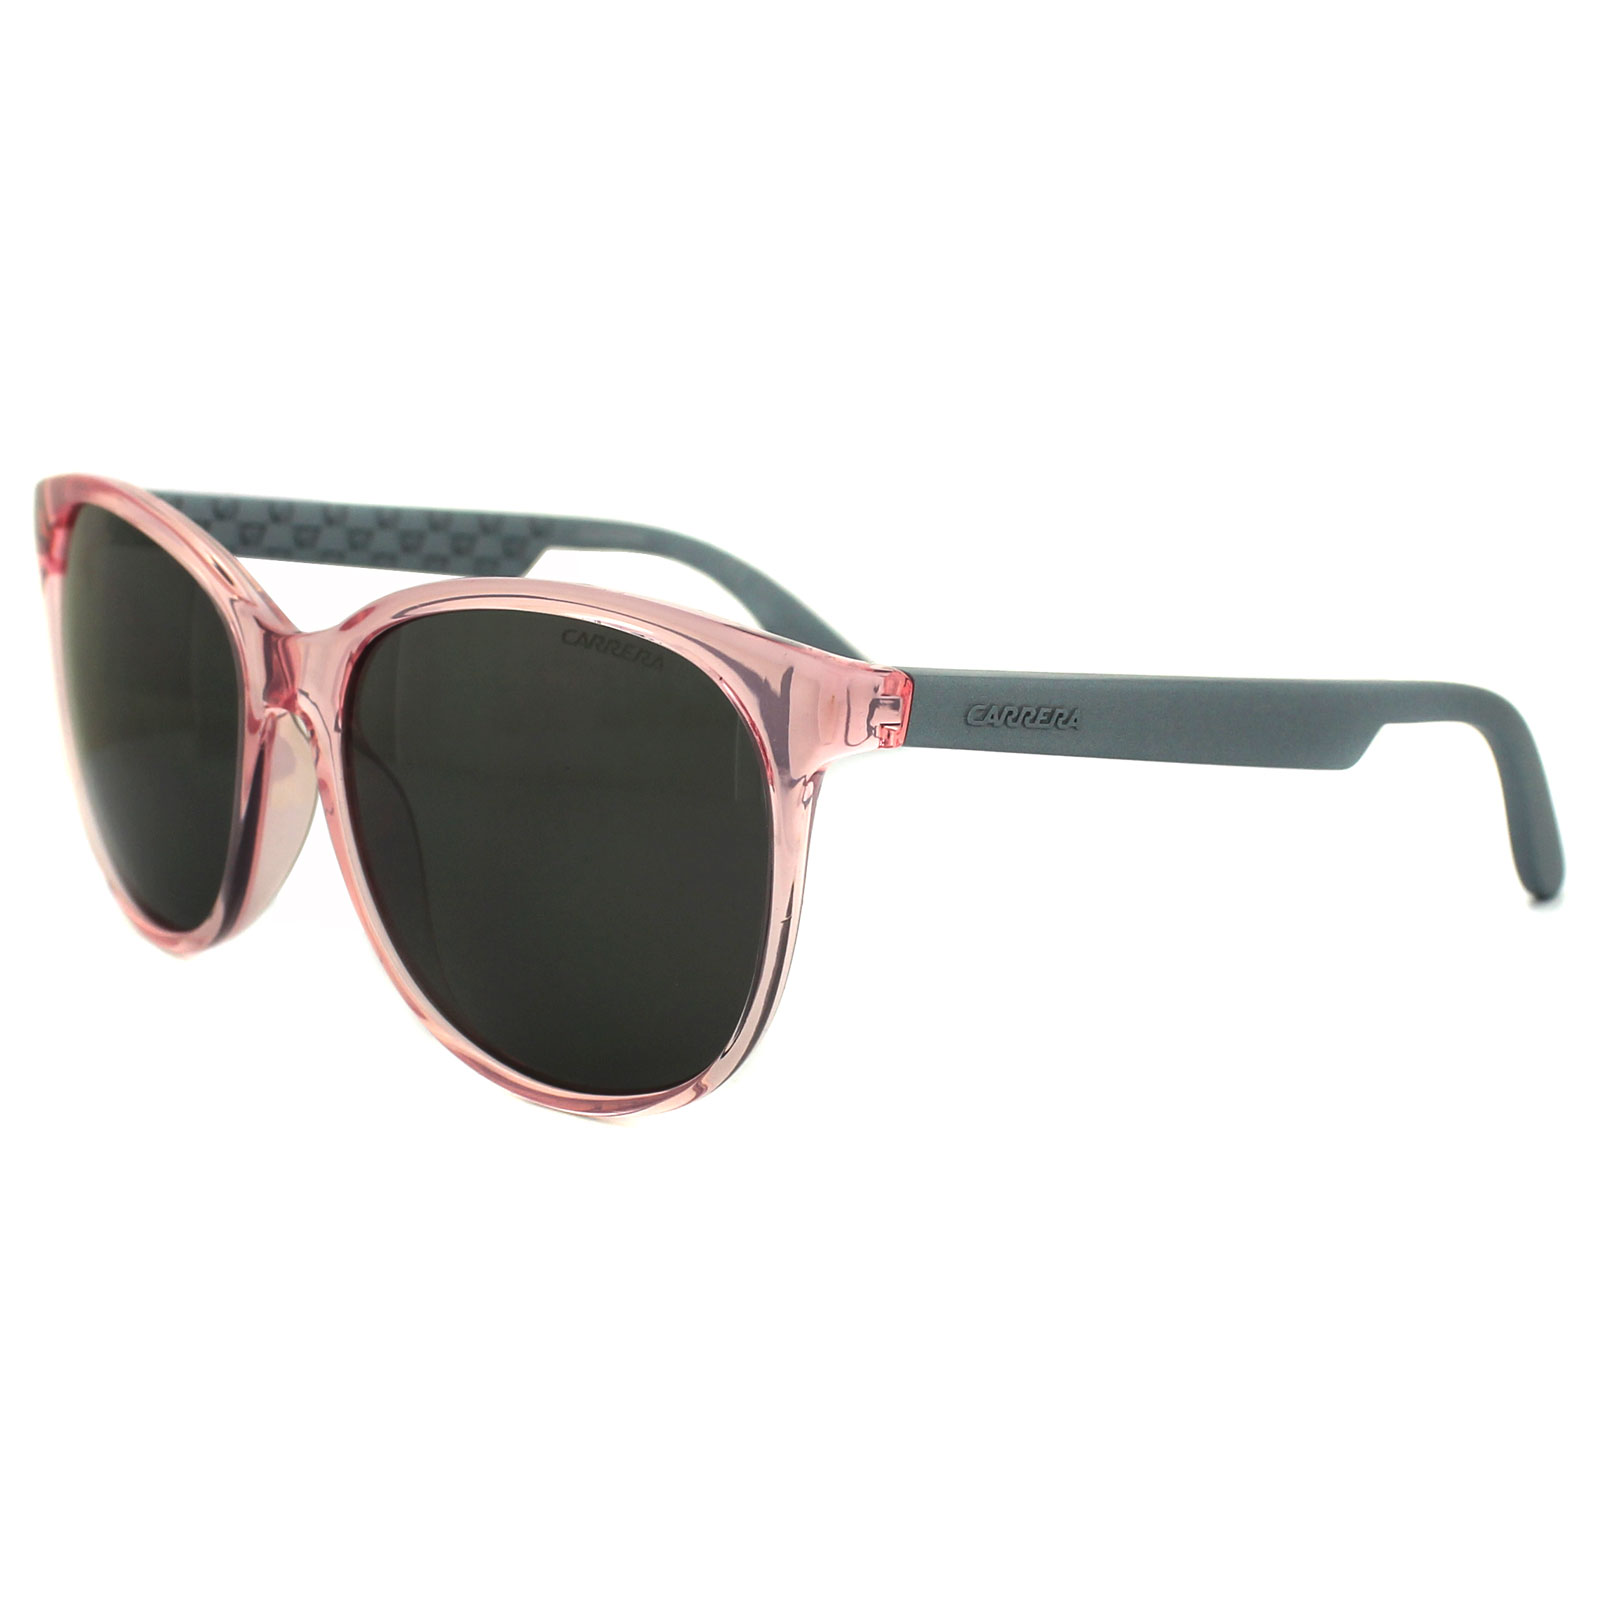 Carrera Sunglasses Quality  carrera sunglasses ed sunglasses